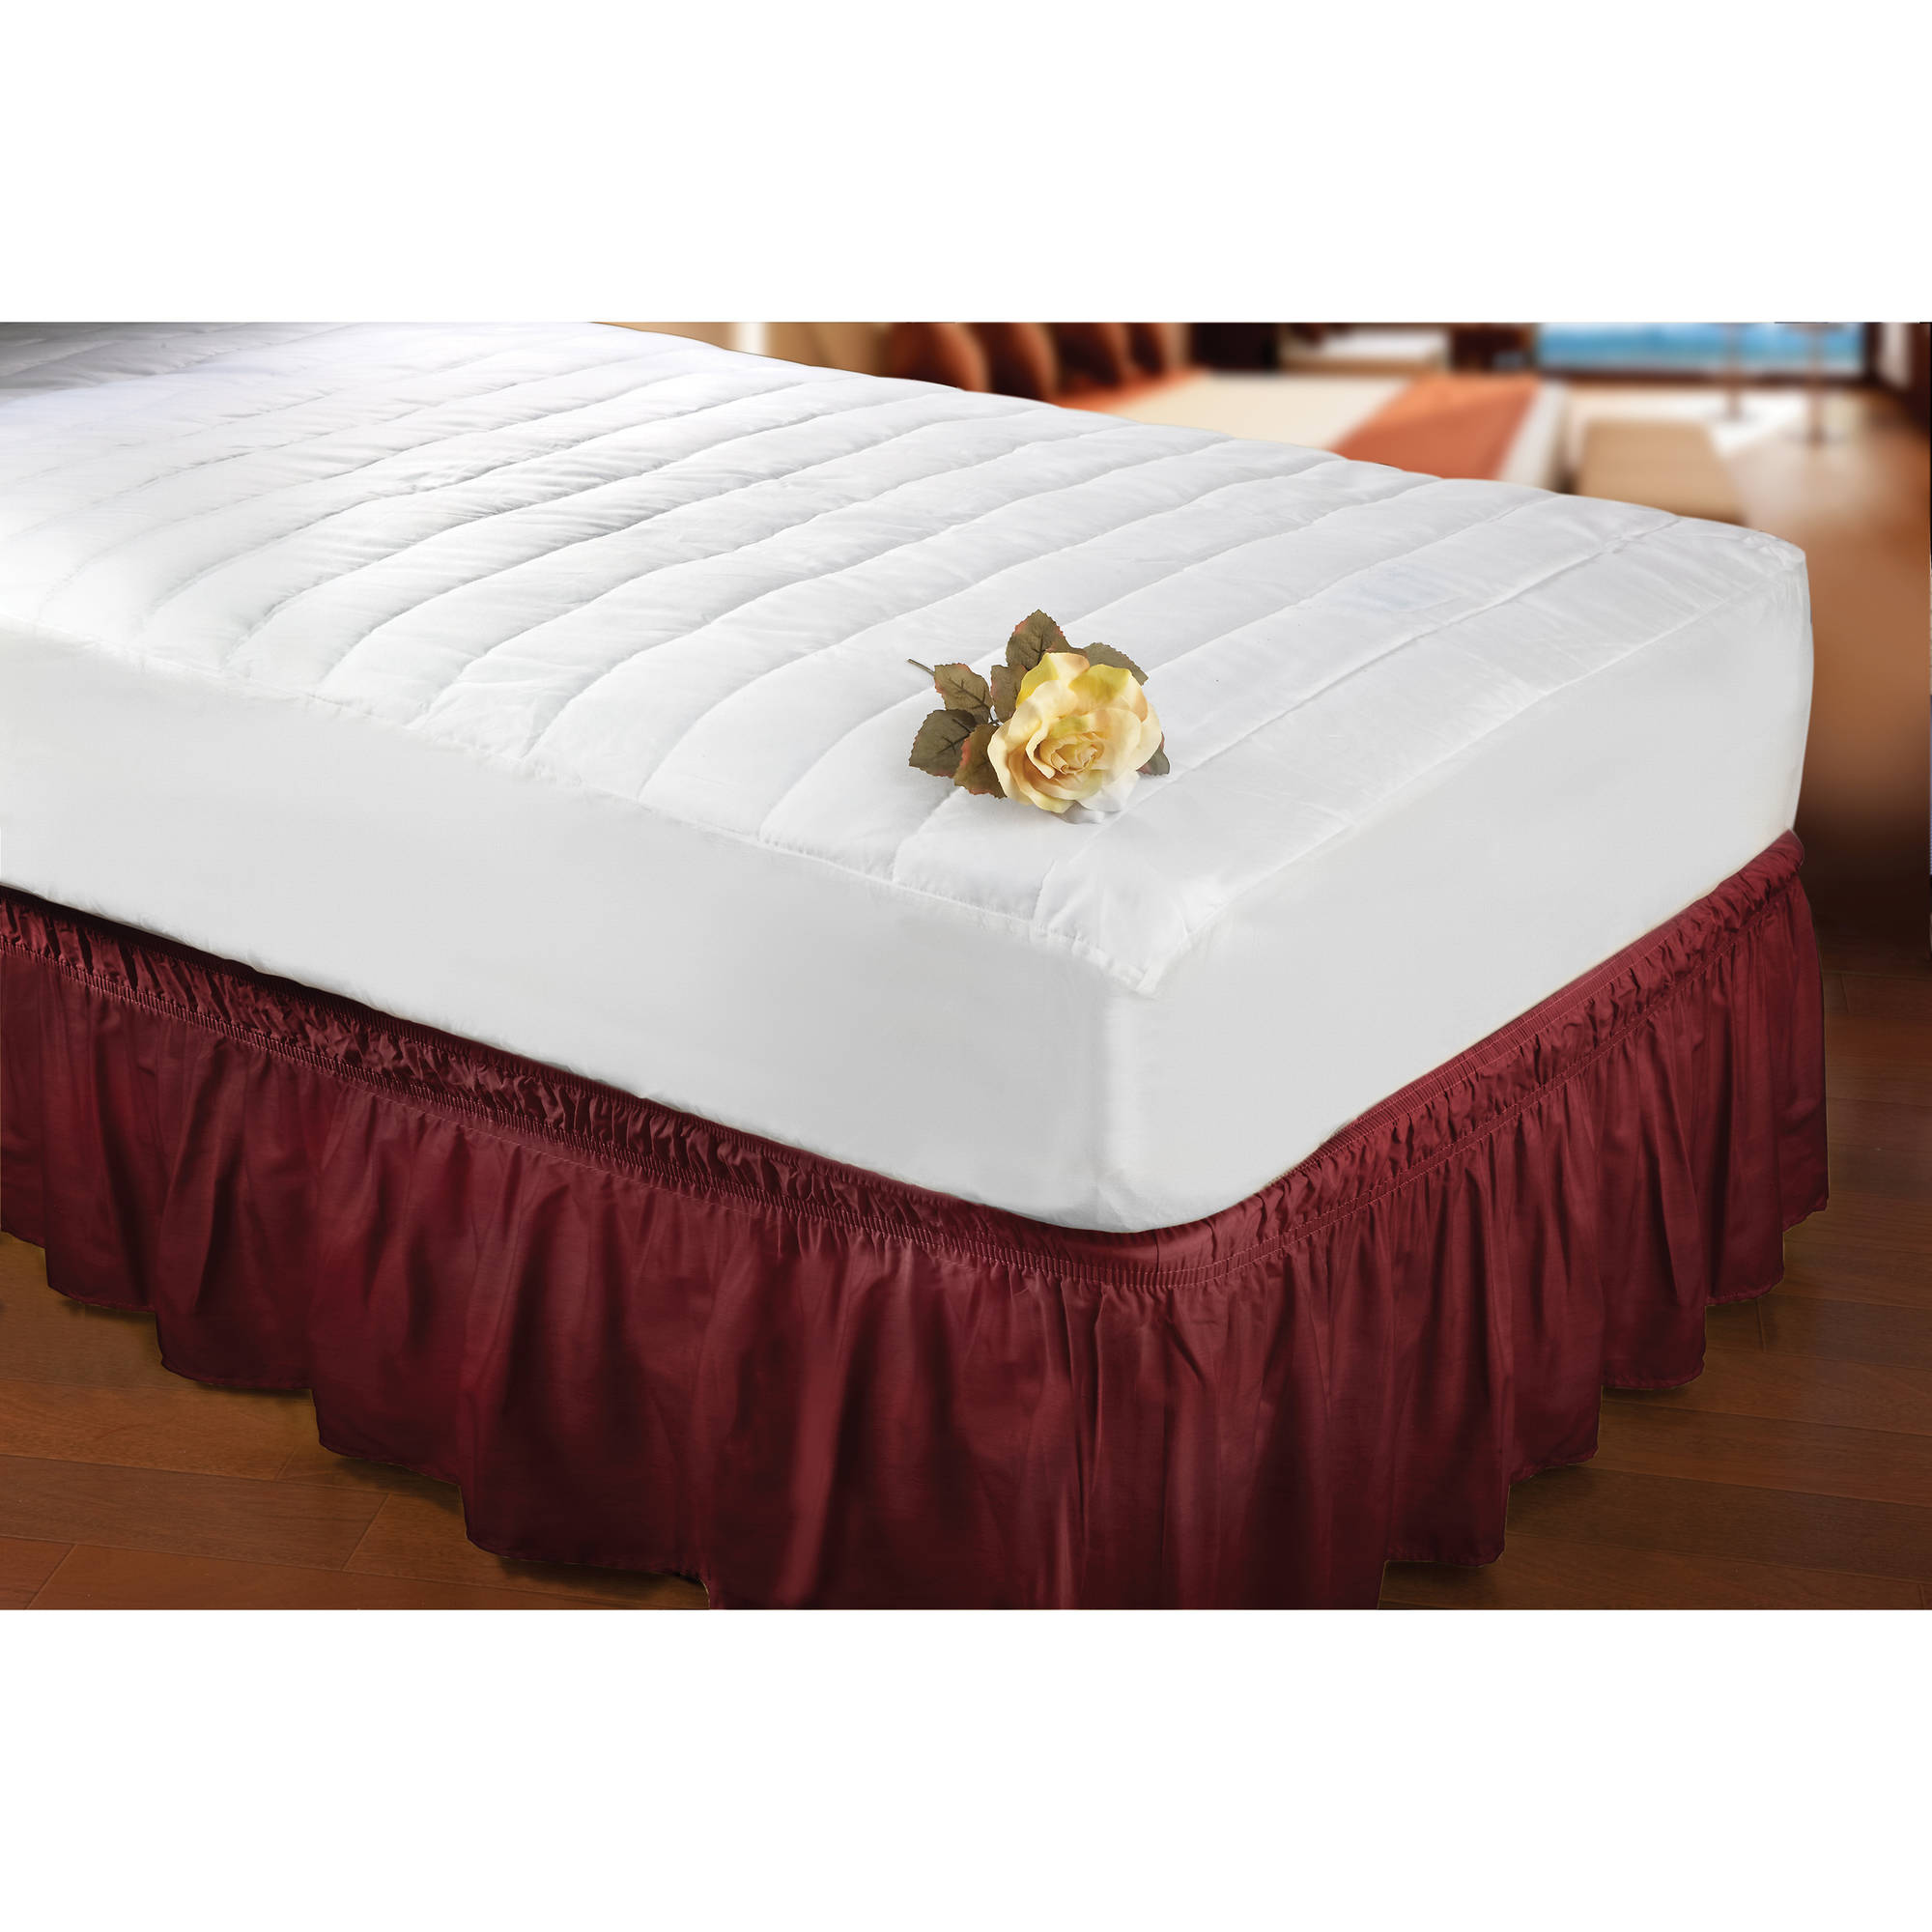 Home Details Antibacterial Mattress Pad/Bed Cover